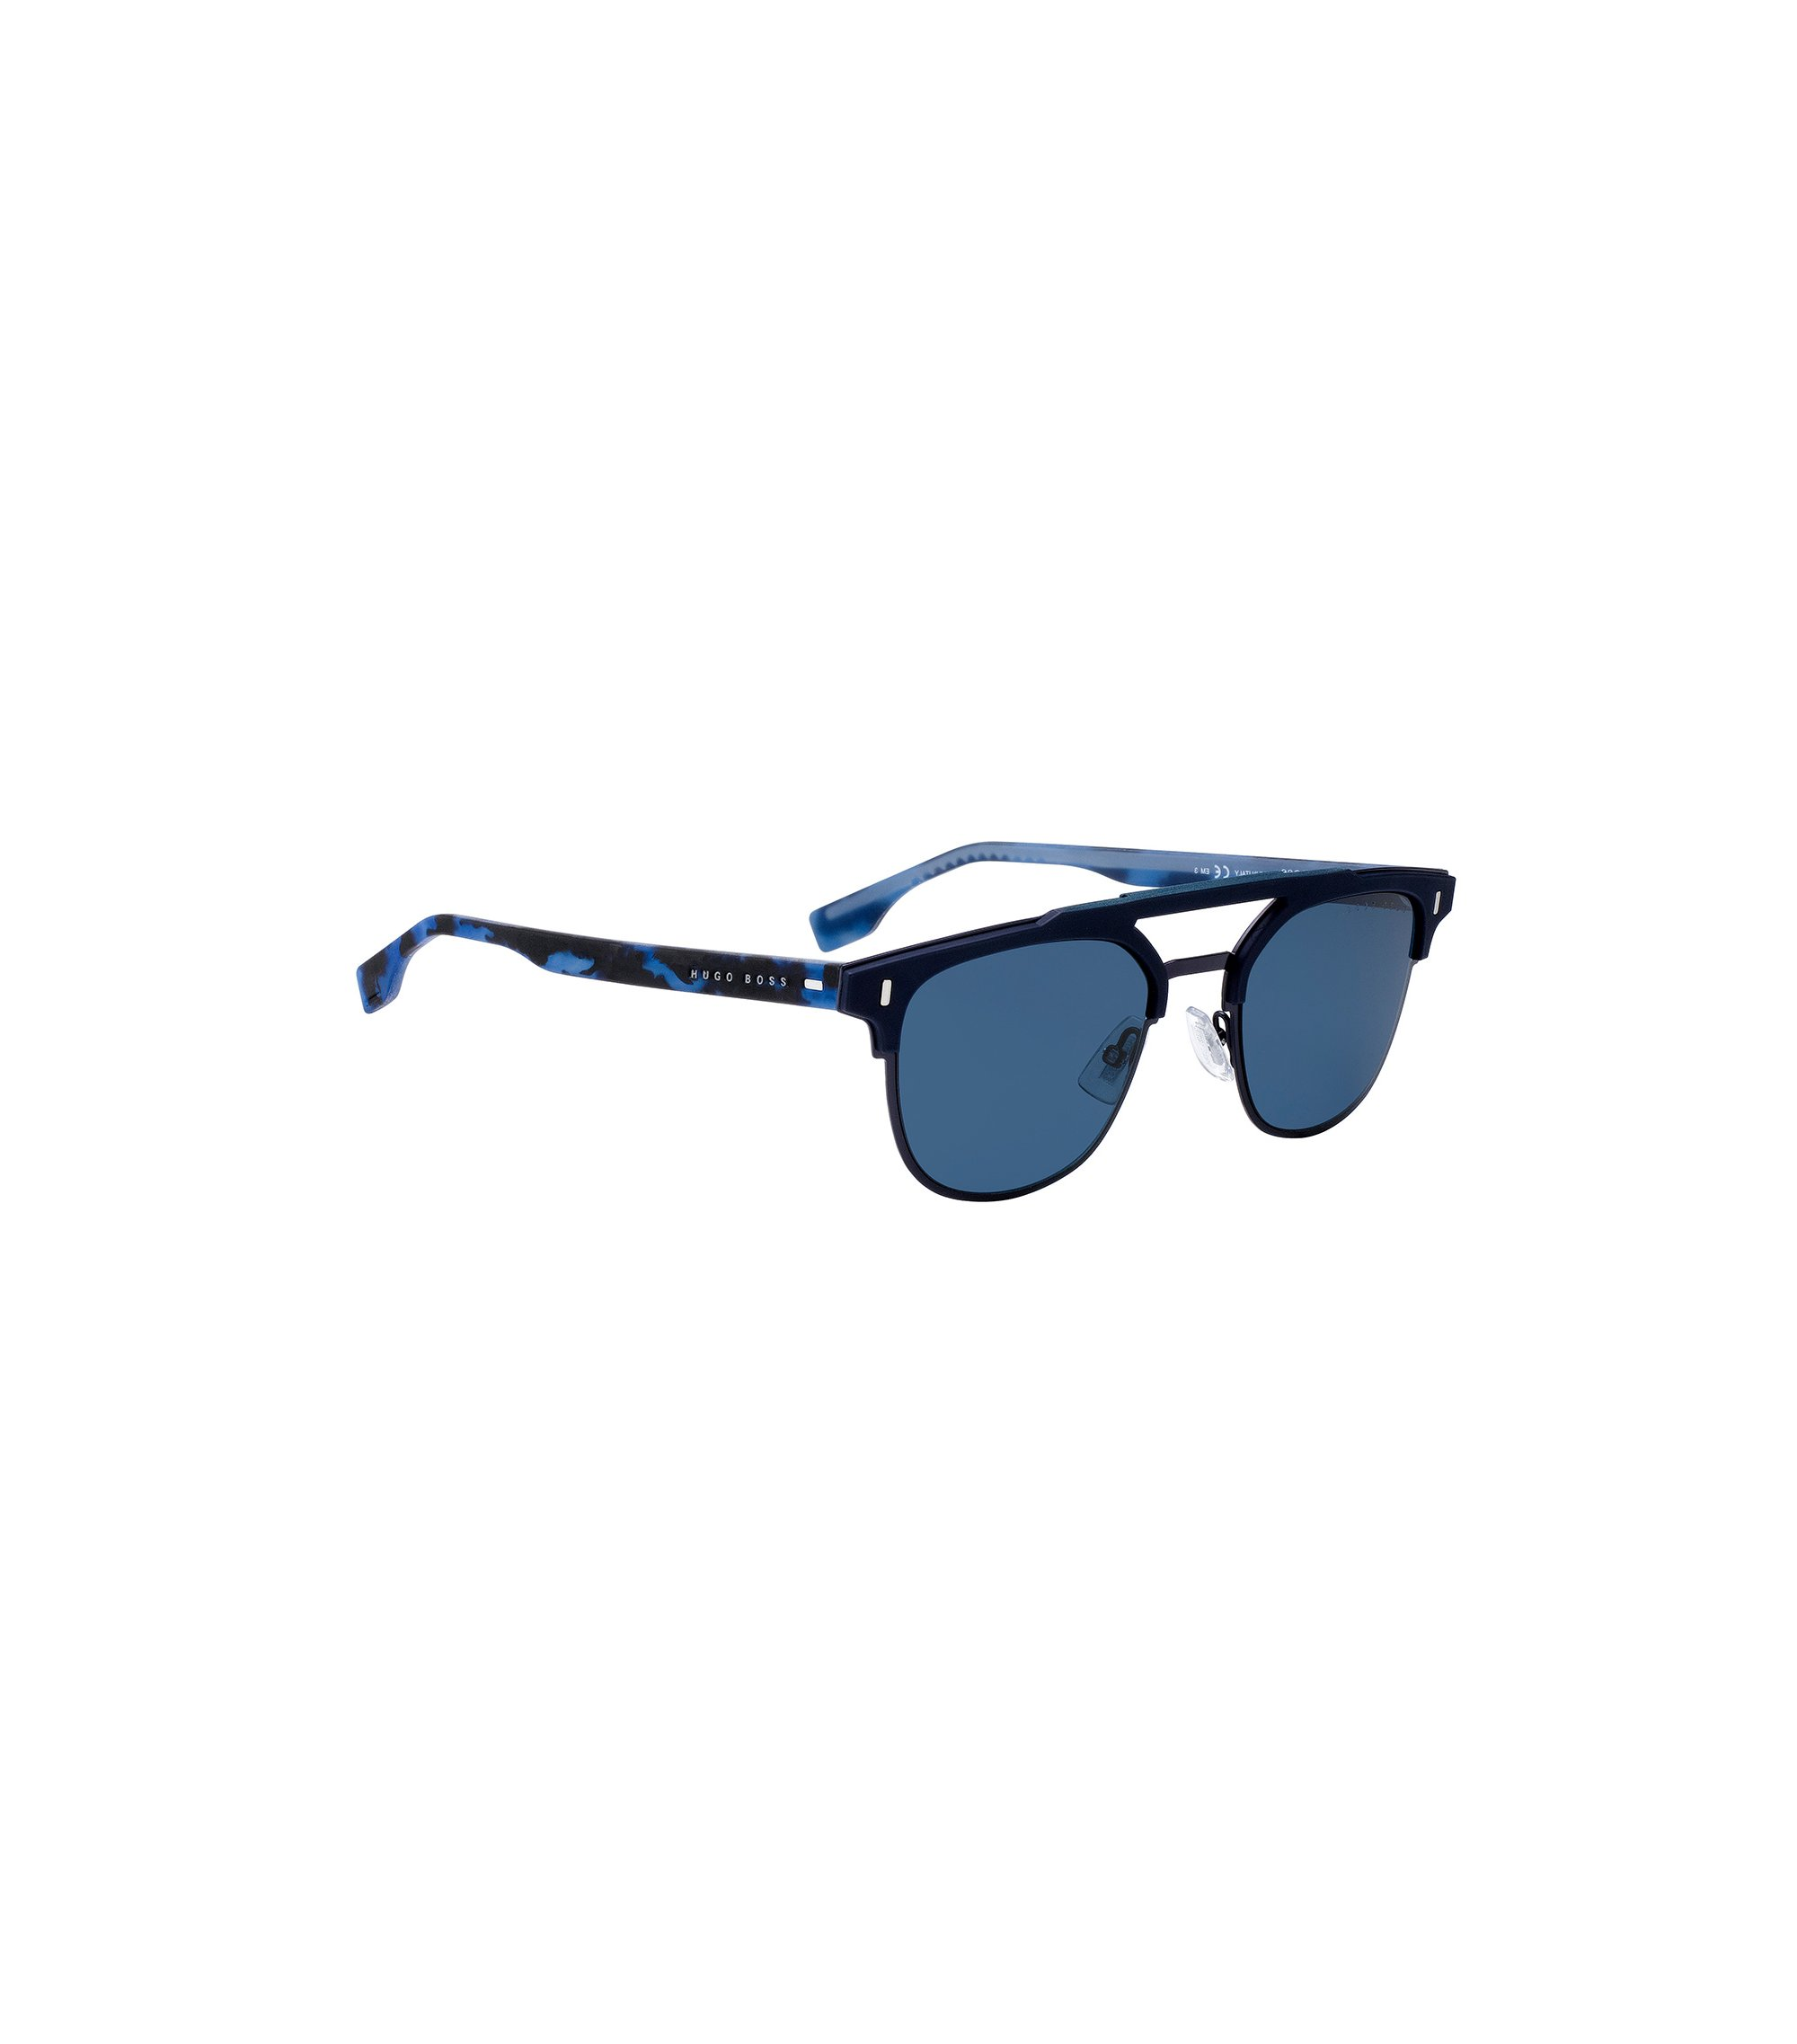 Matt-blue sunglasses with rubberised Havana temples, Blue